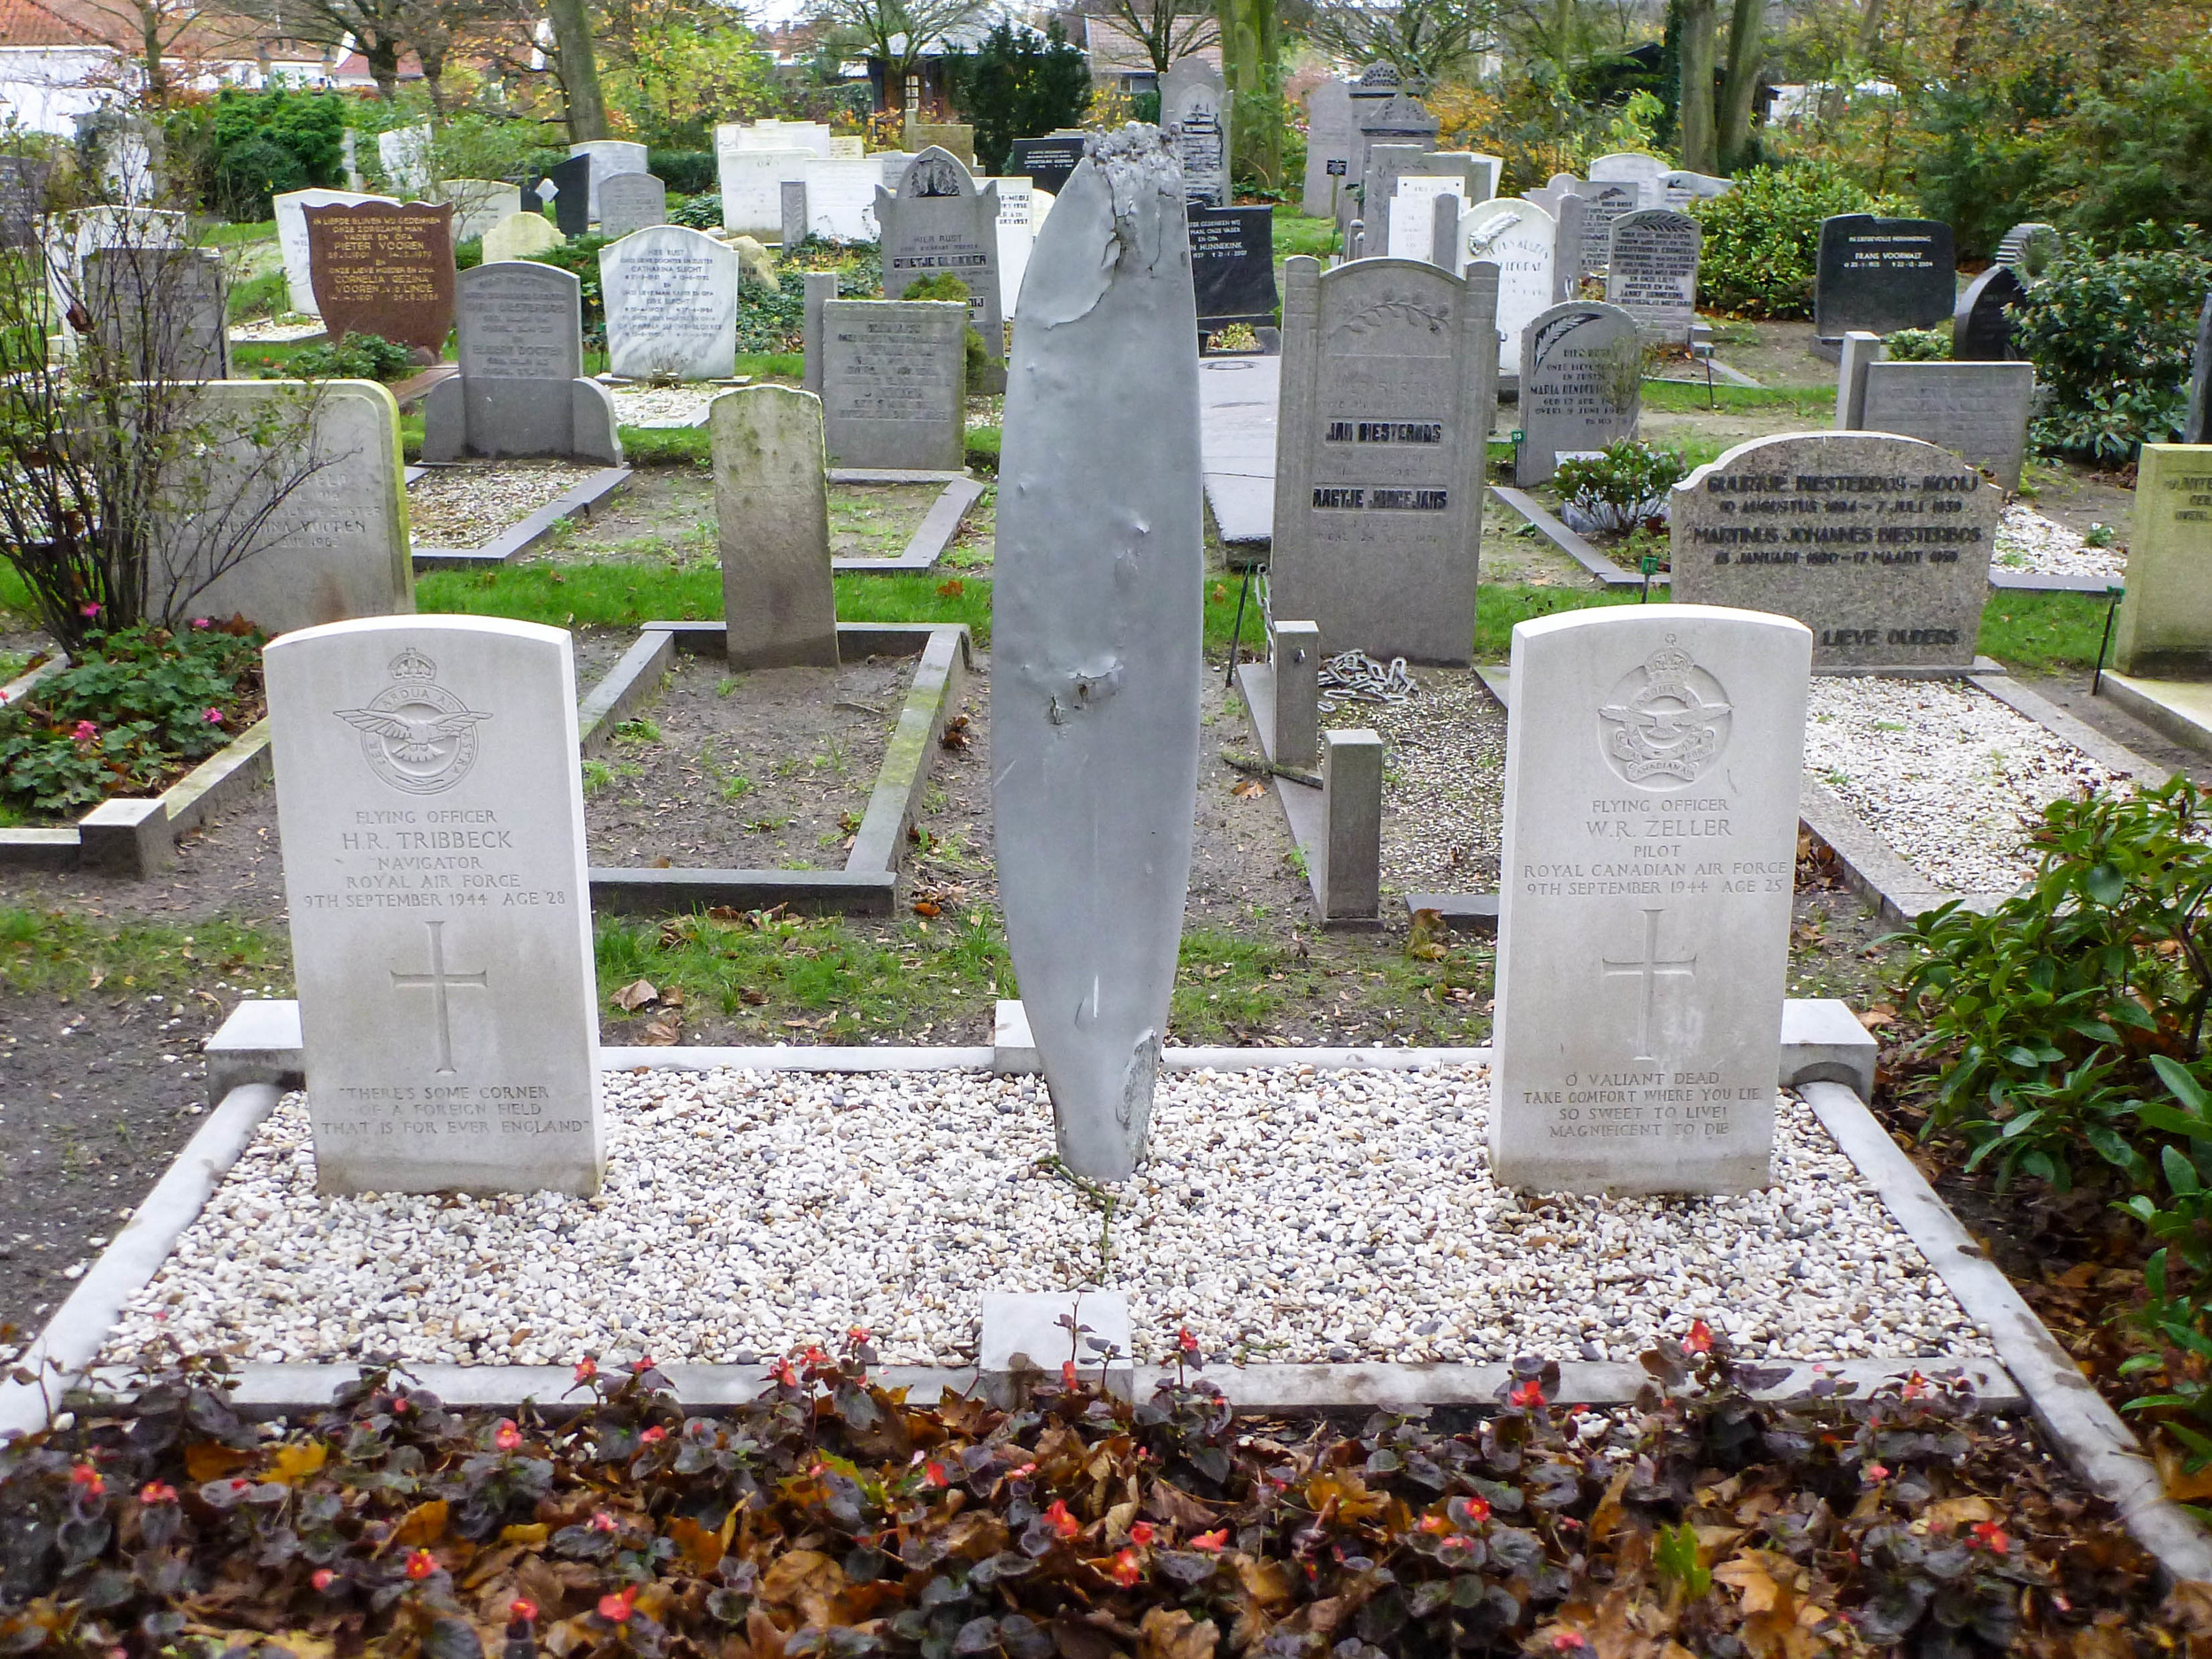 One of their aircraft's propeller blades between their resting places